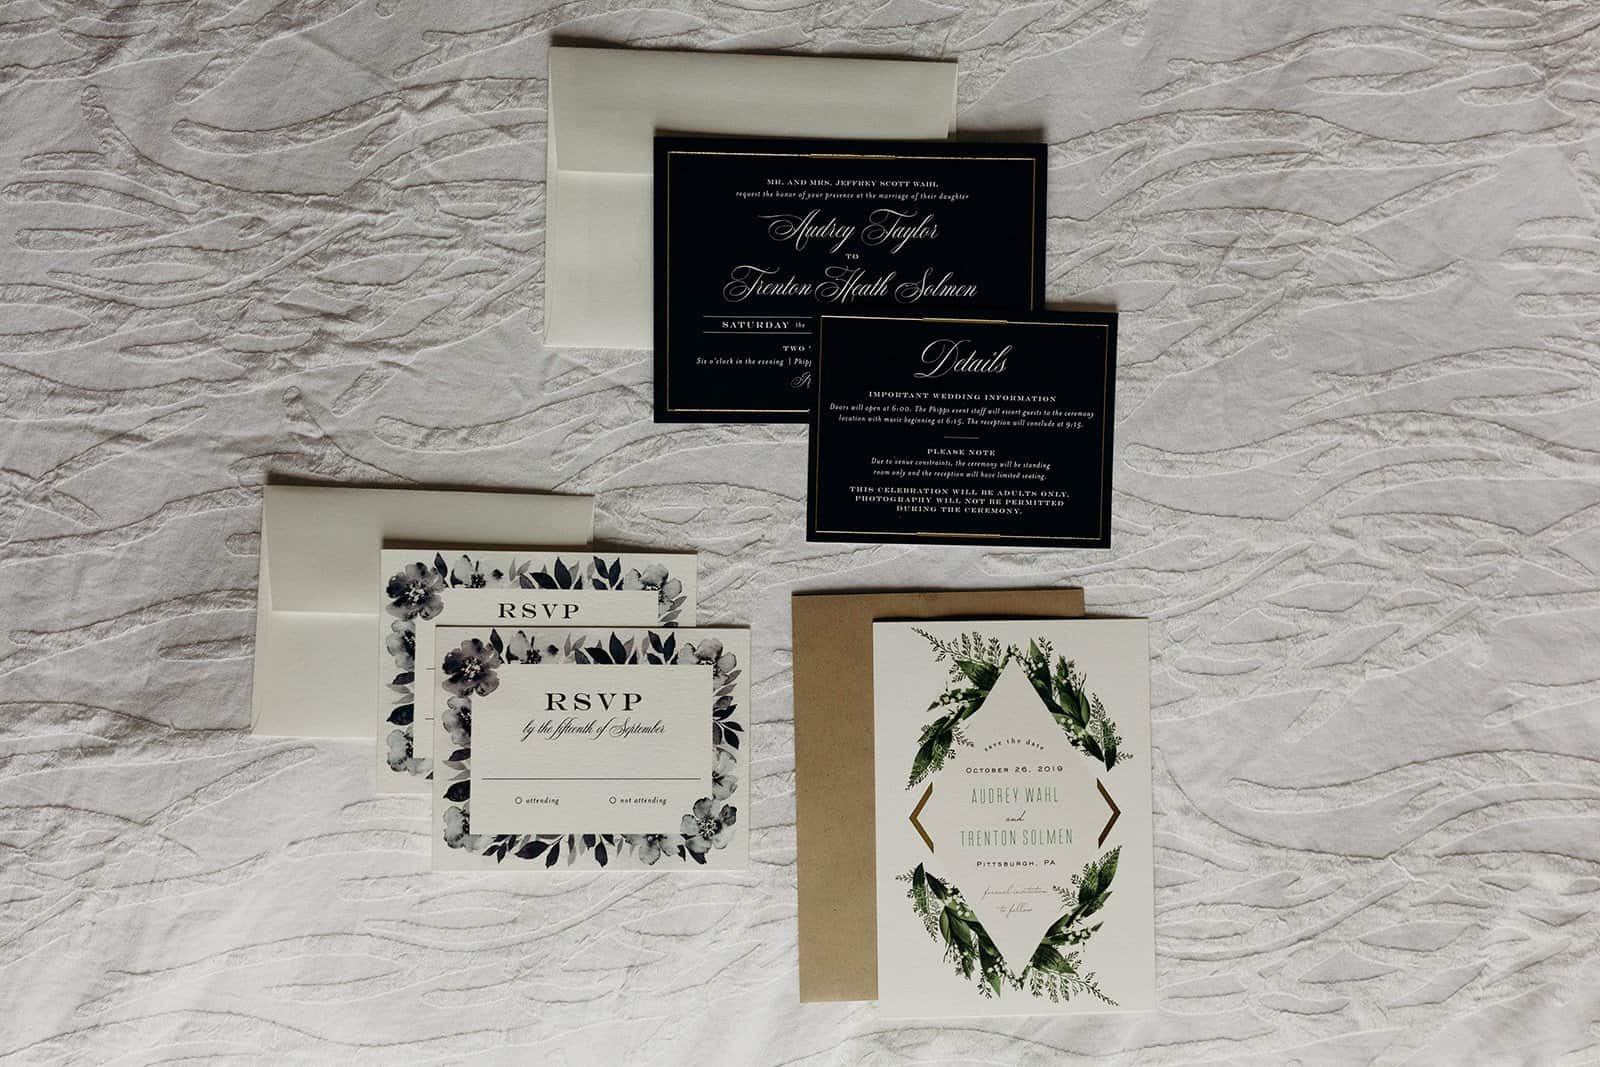 overhead shot of invitation suite on bed